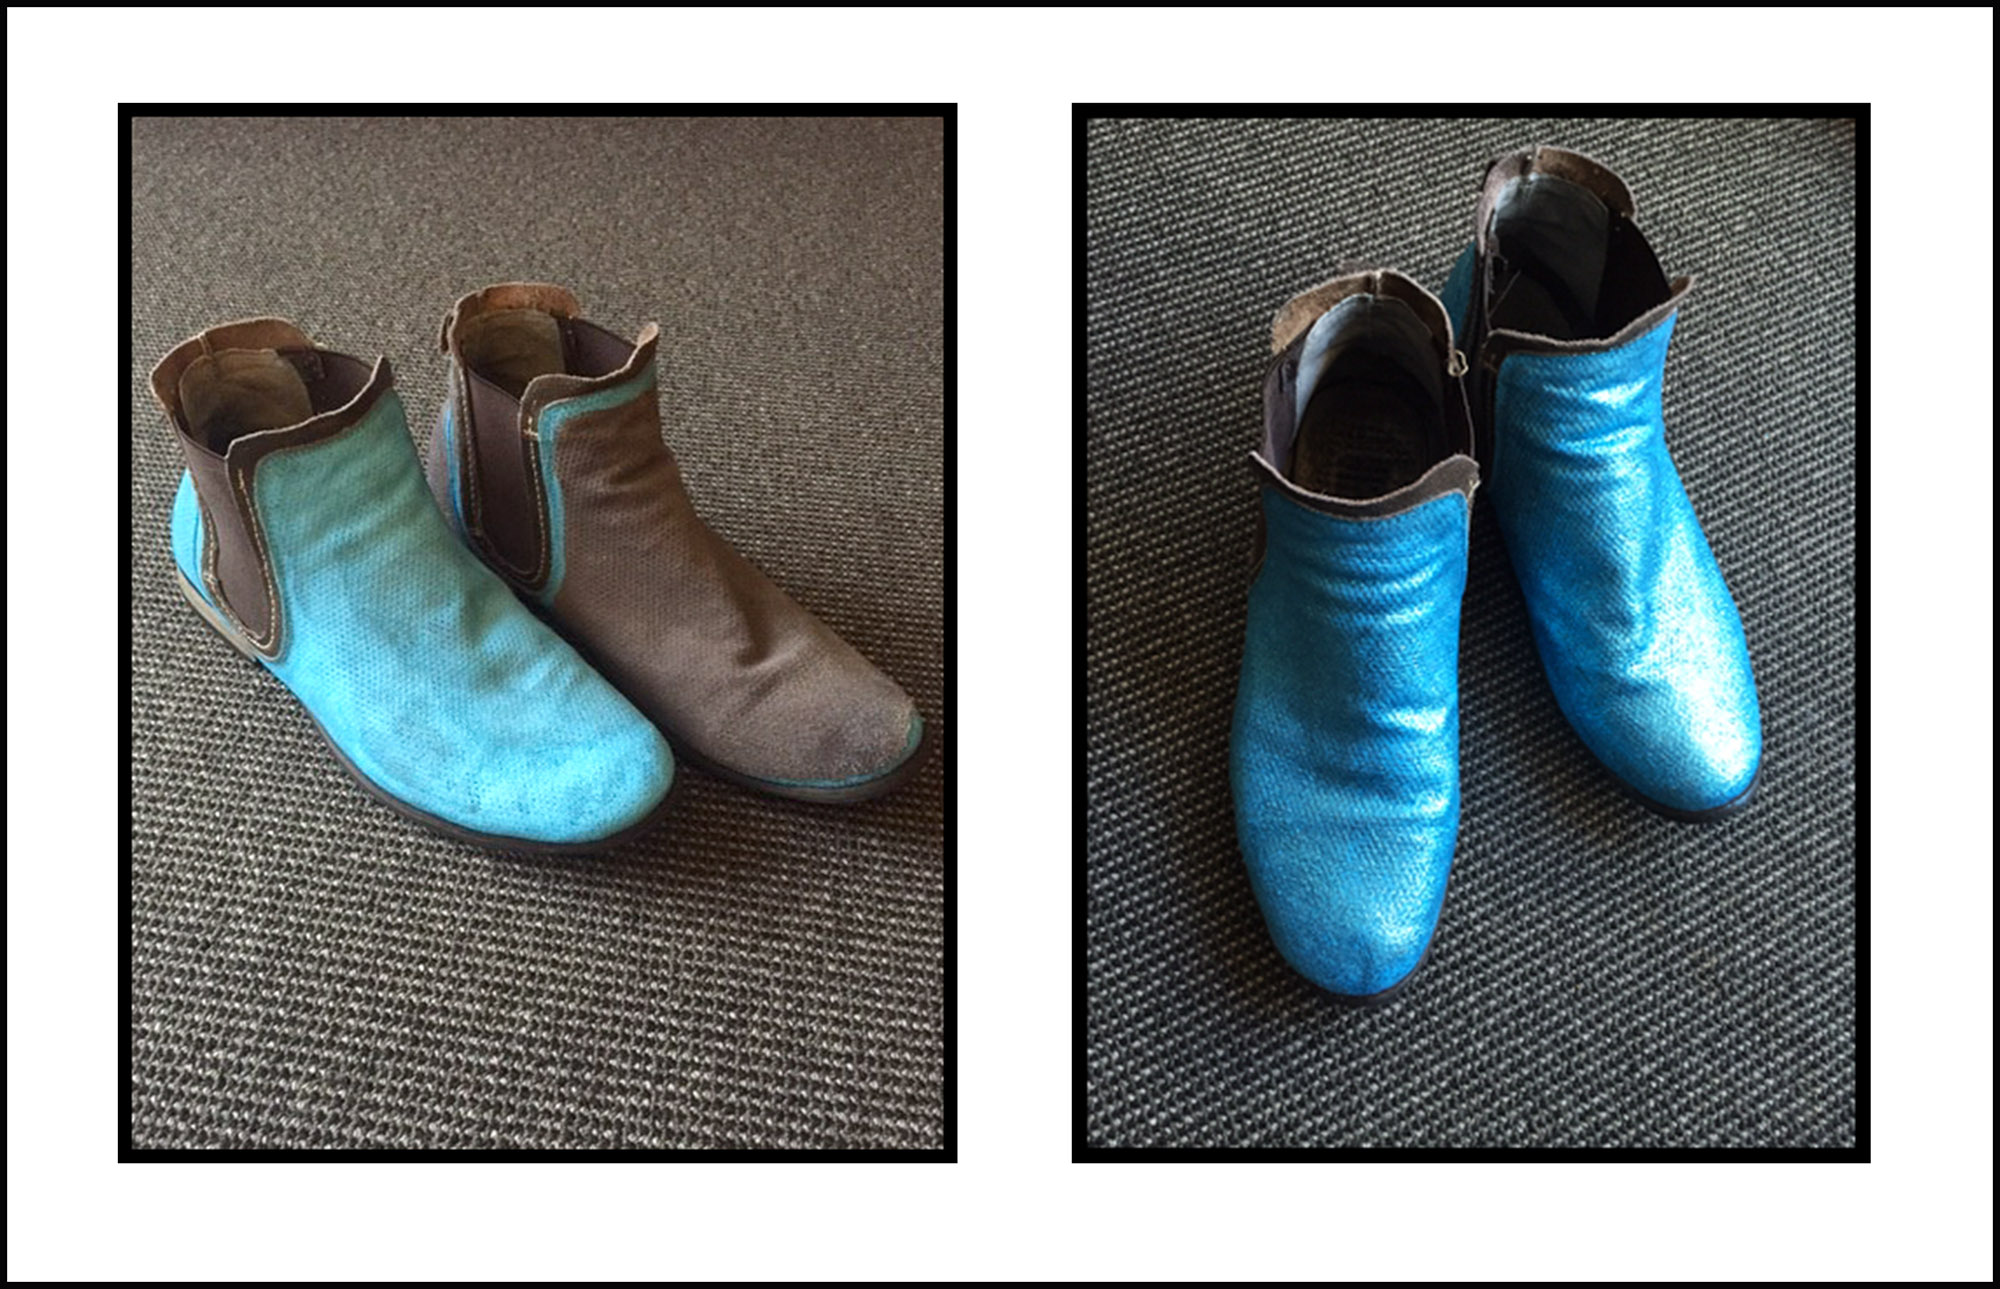 Kanen's painted boots